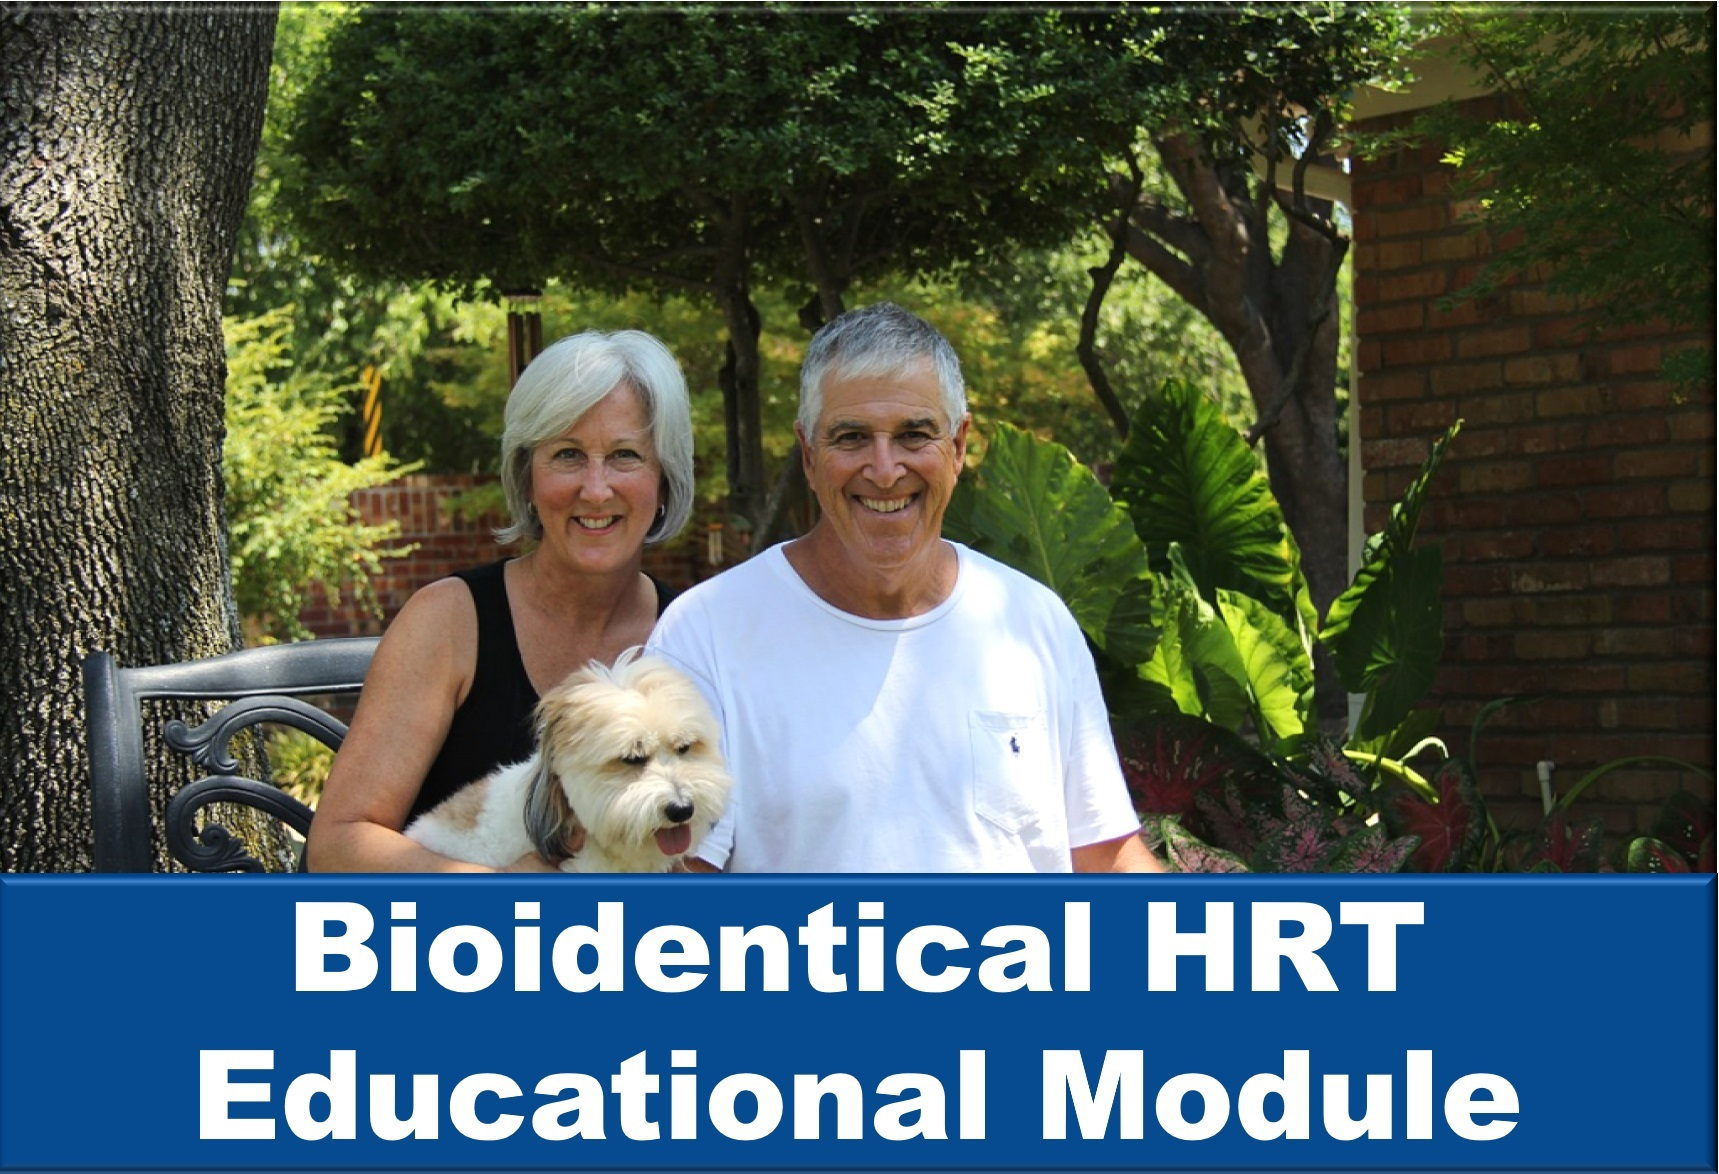 Bioidentical HRT Educational Module